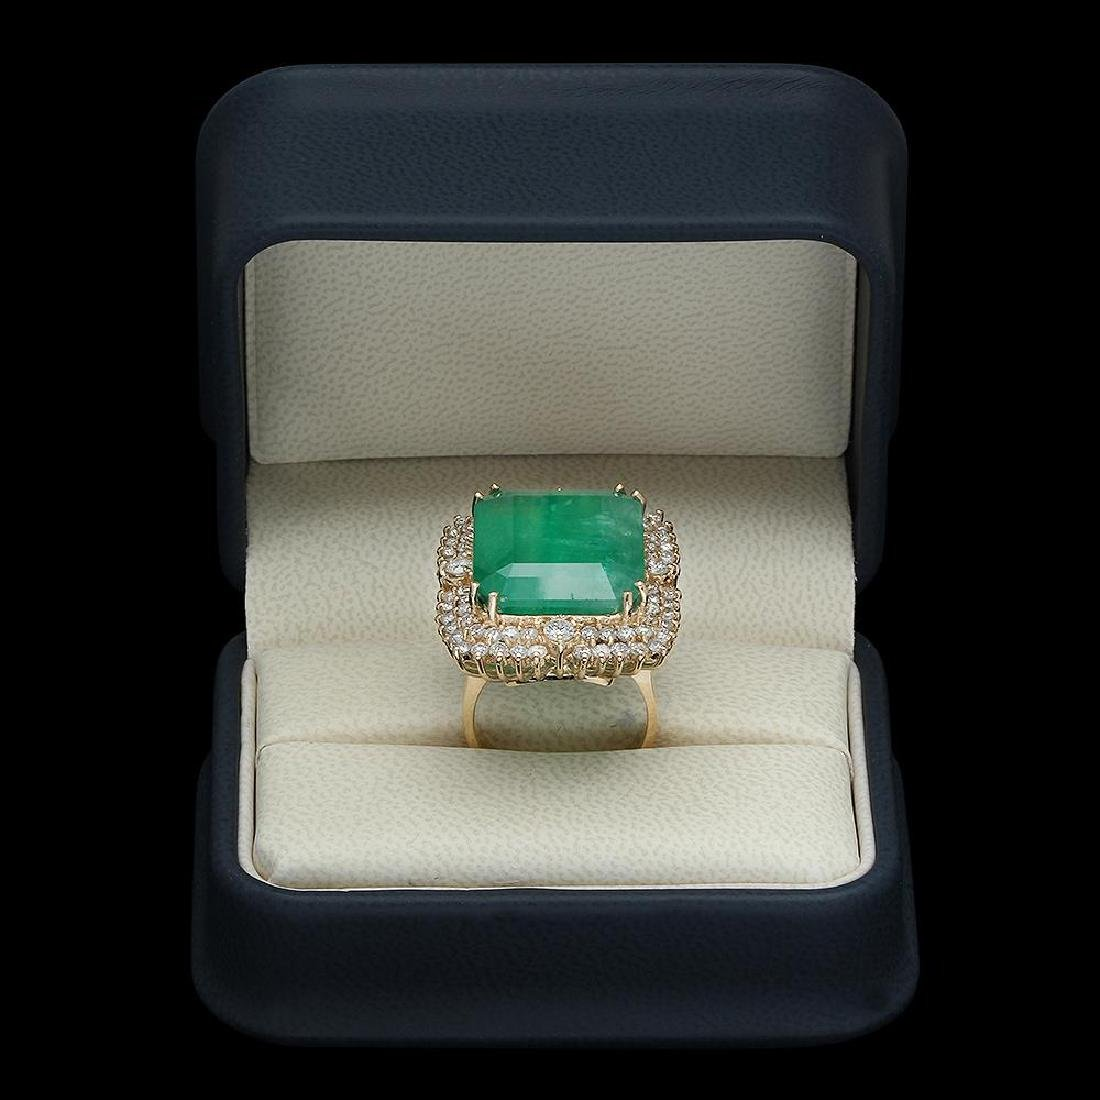 14K Gold 29.27 Emerald 2.52 Diamond Ring - 4